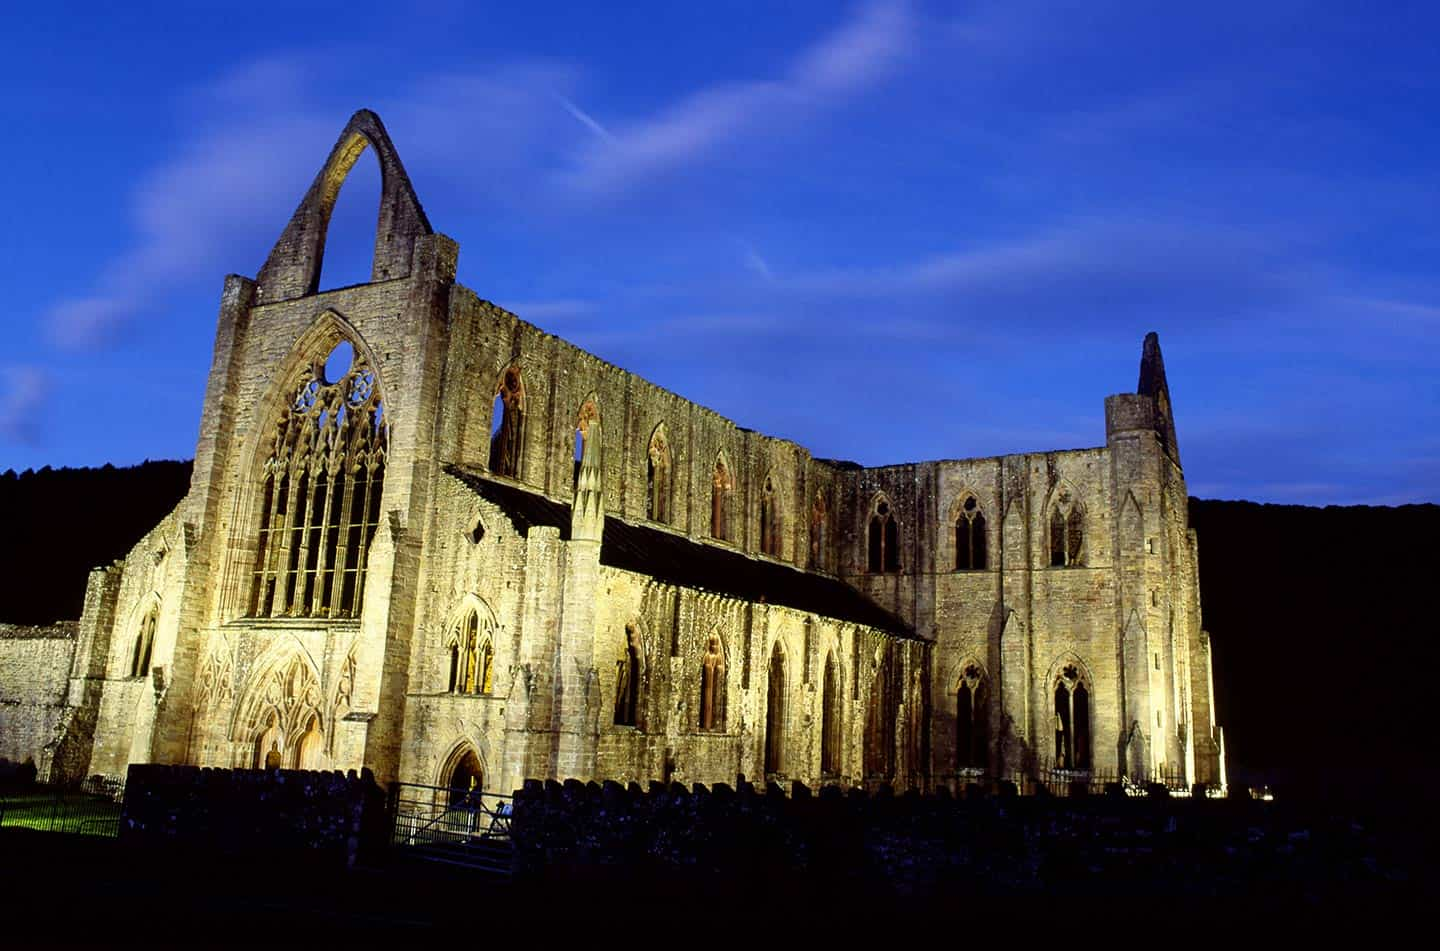 Image of Tintern Abbey, Wales, at night